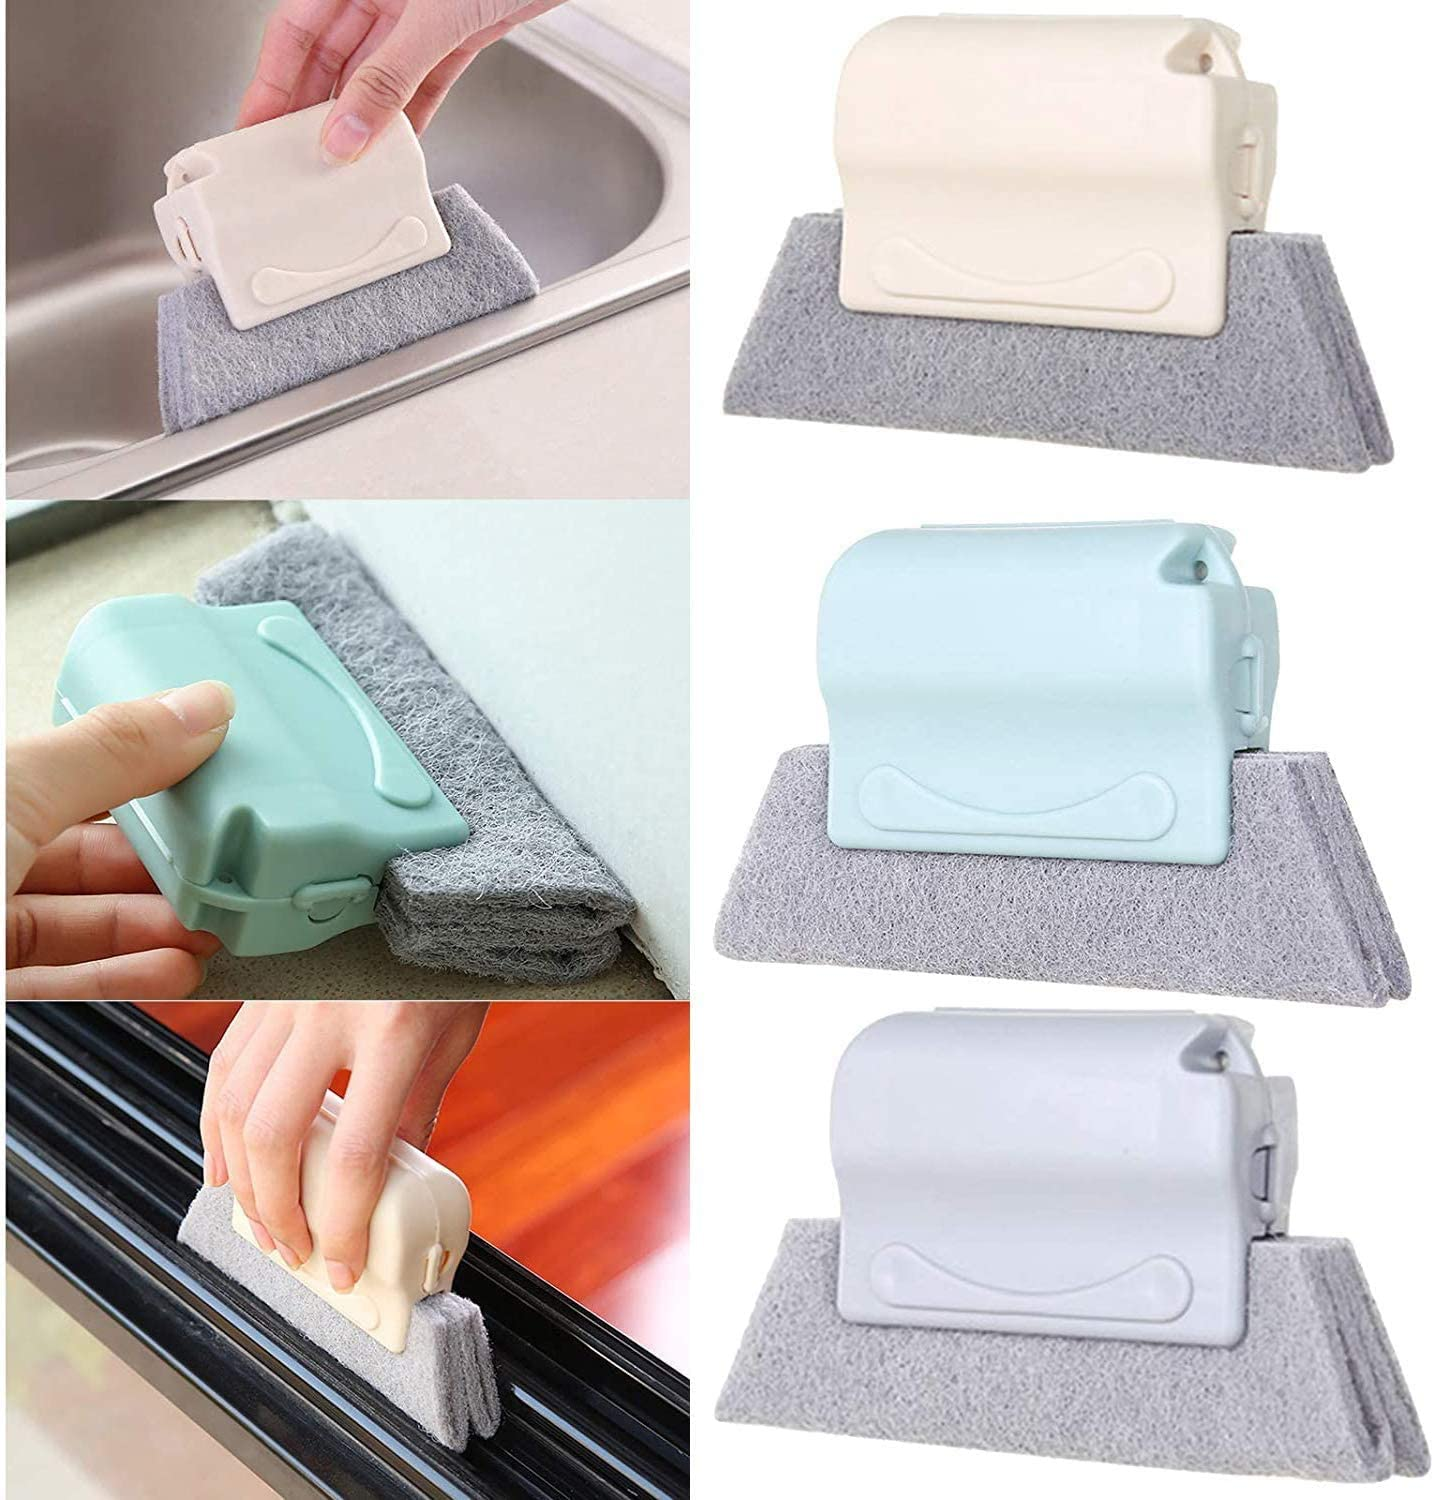 3 pieces of creative door and window gap cleaning brush, hand-held grip gap angle, multi-functional cleaning tool, suitable for sliding doors and windows, gaps, corners and corners.